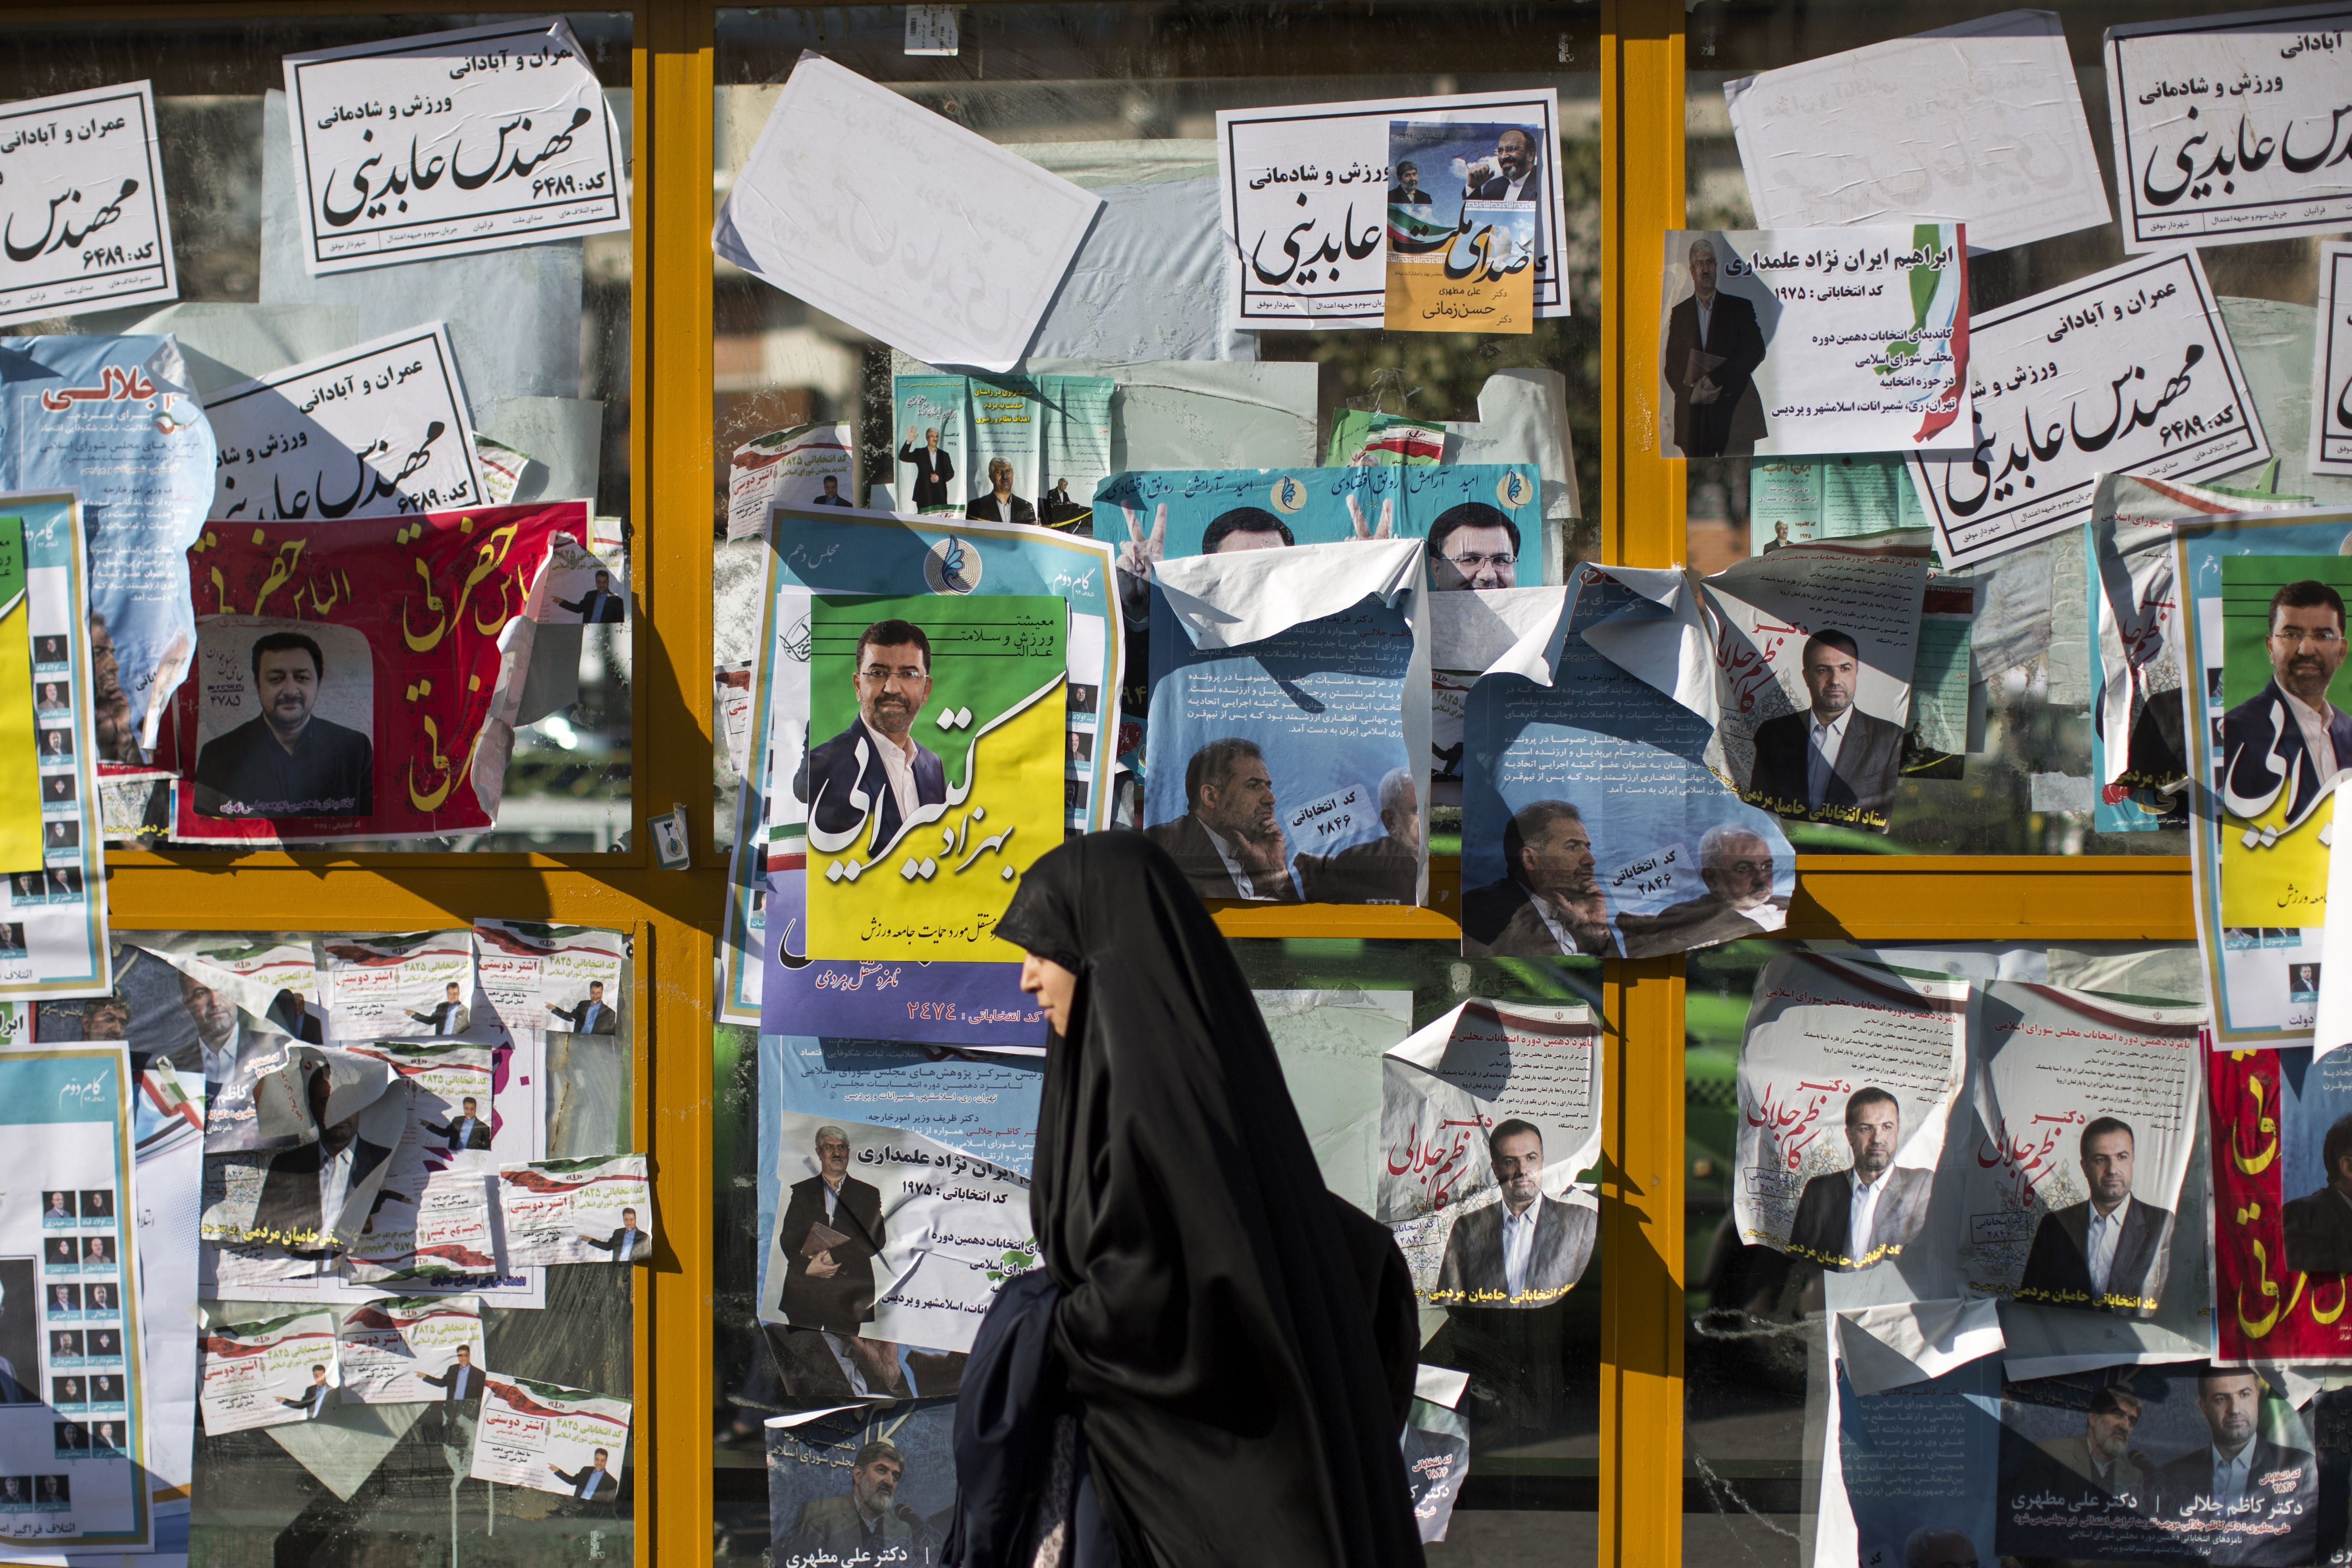 An Iranian woman walks past electoral posters for upcoming parliamentary elections in downtown Tehran on Feb. 25, 2016.